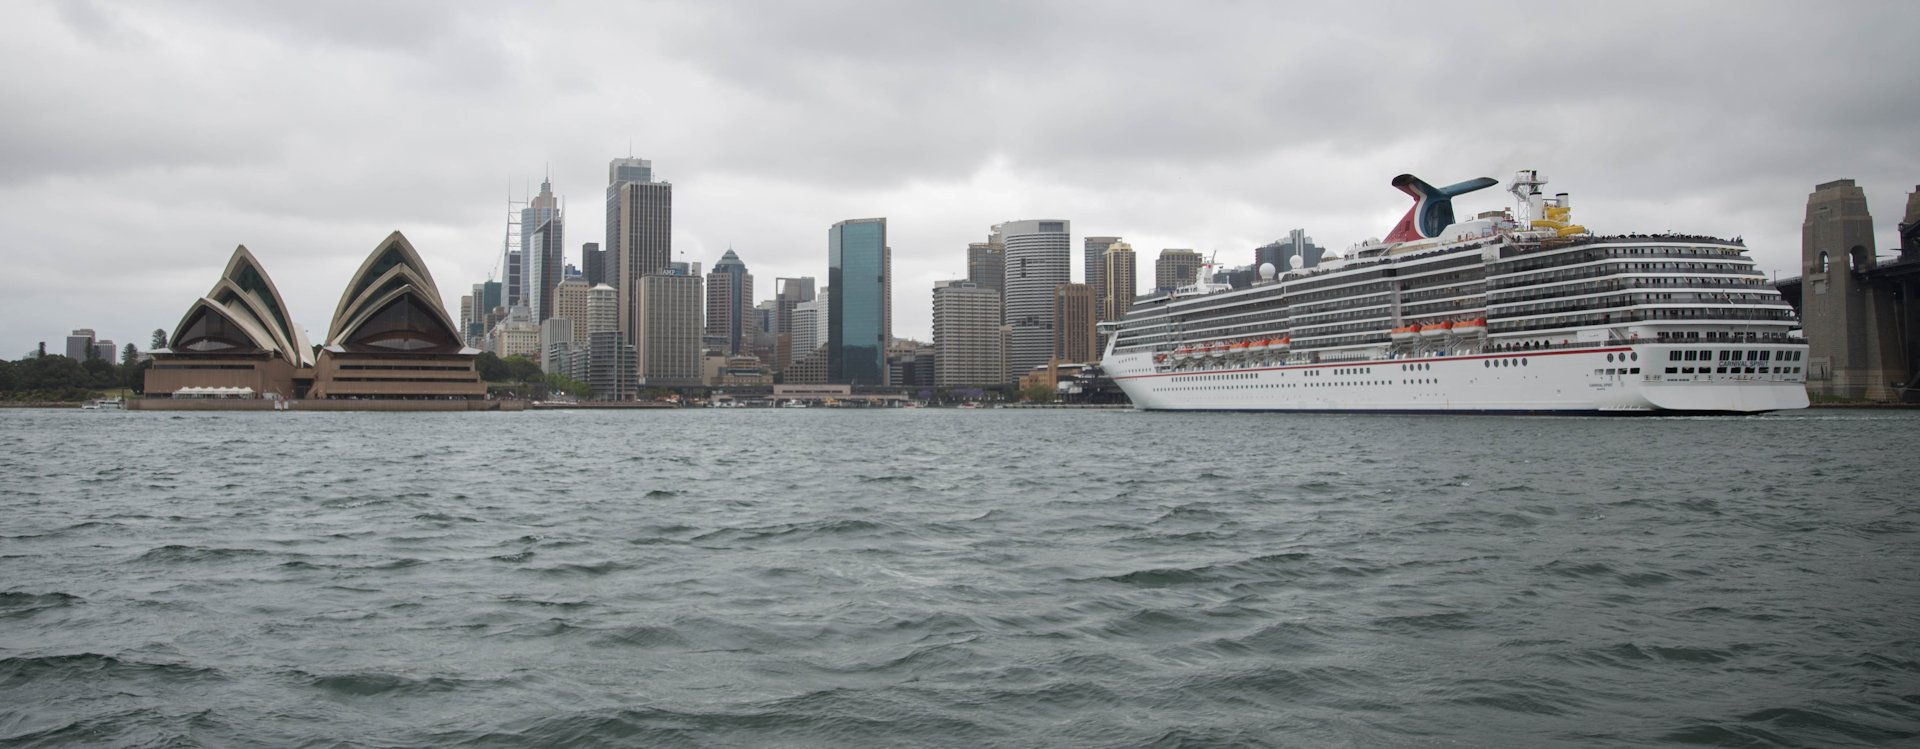 "Cruise Ship ""Carnival Spirit"" in the harbour of Sydney"